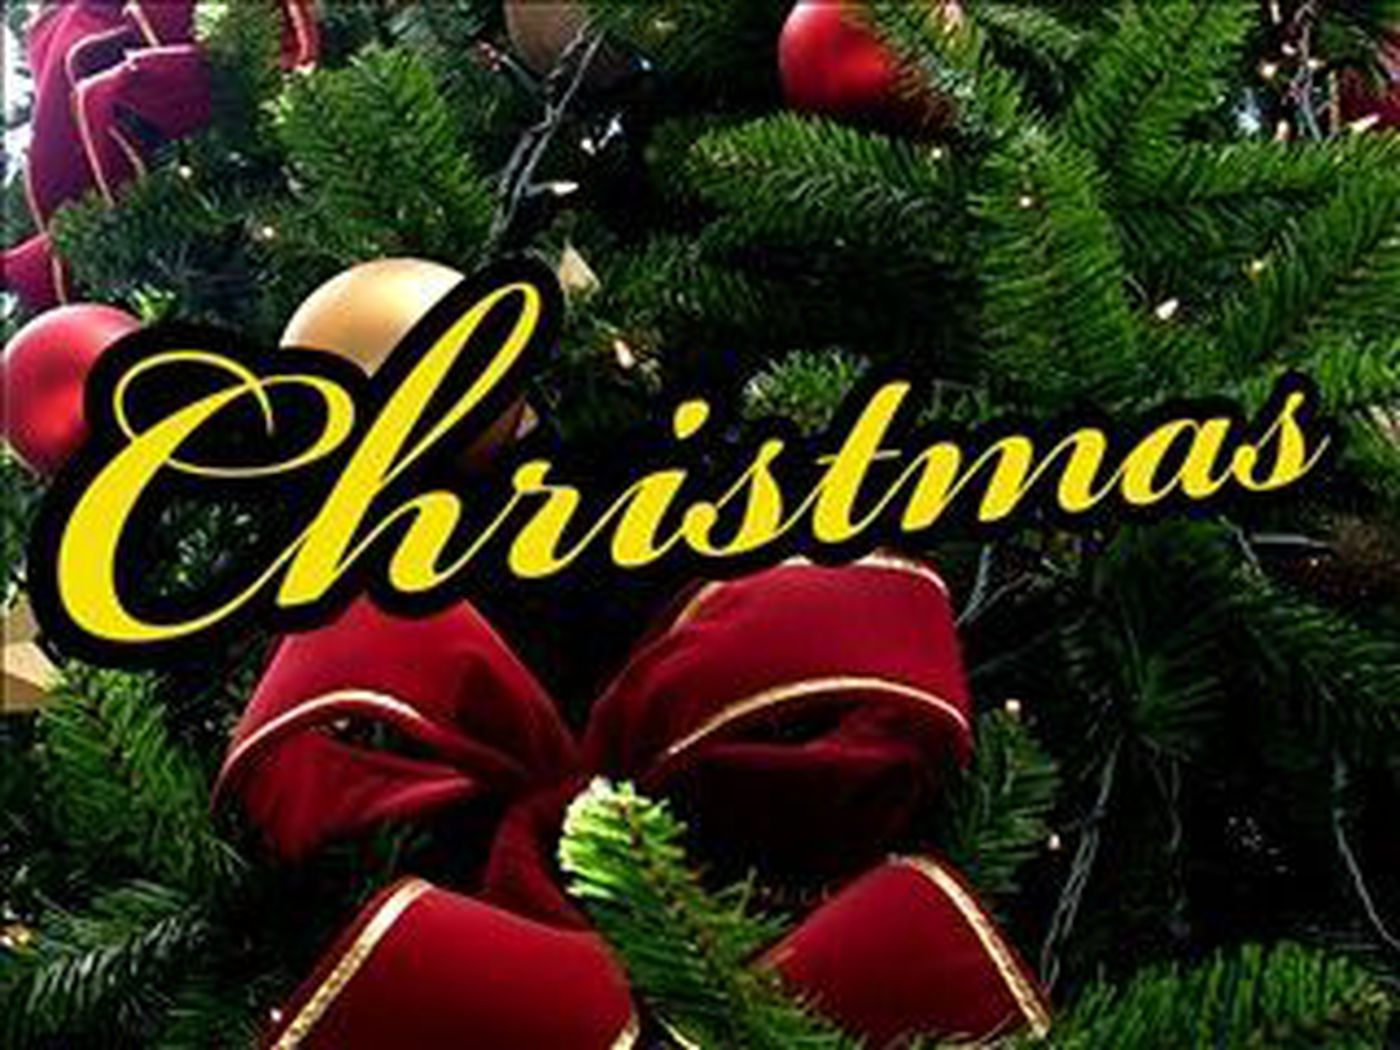 Christmas tree giveaway for low-income families